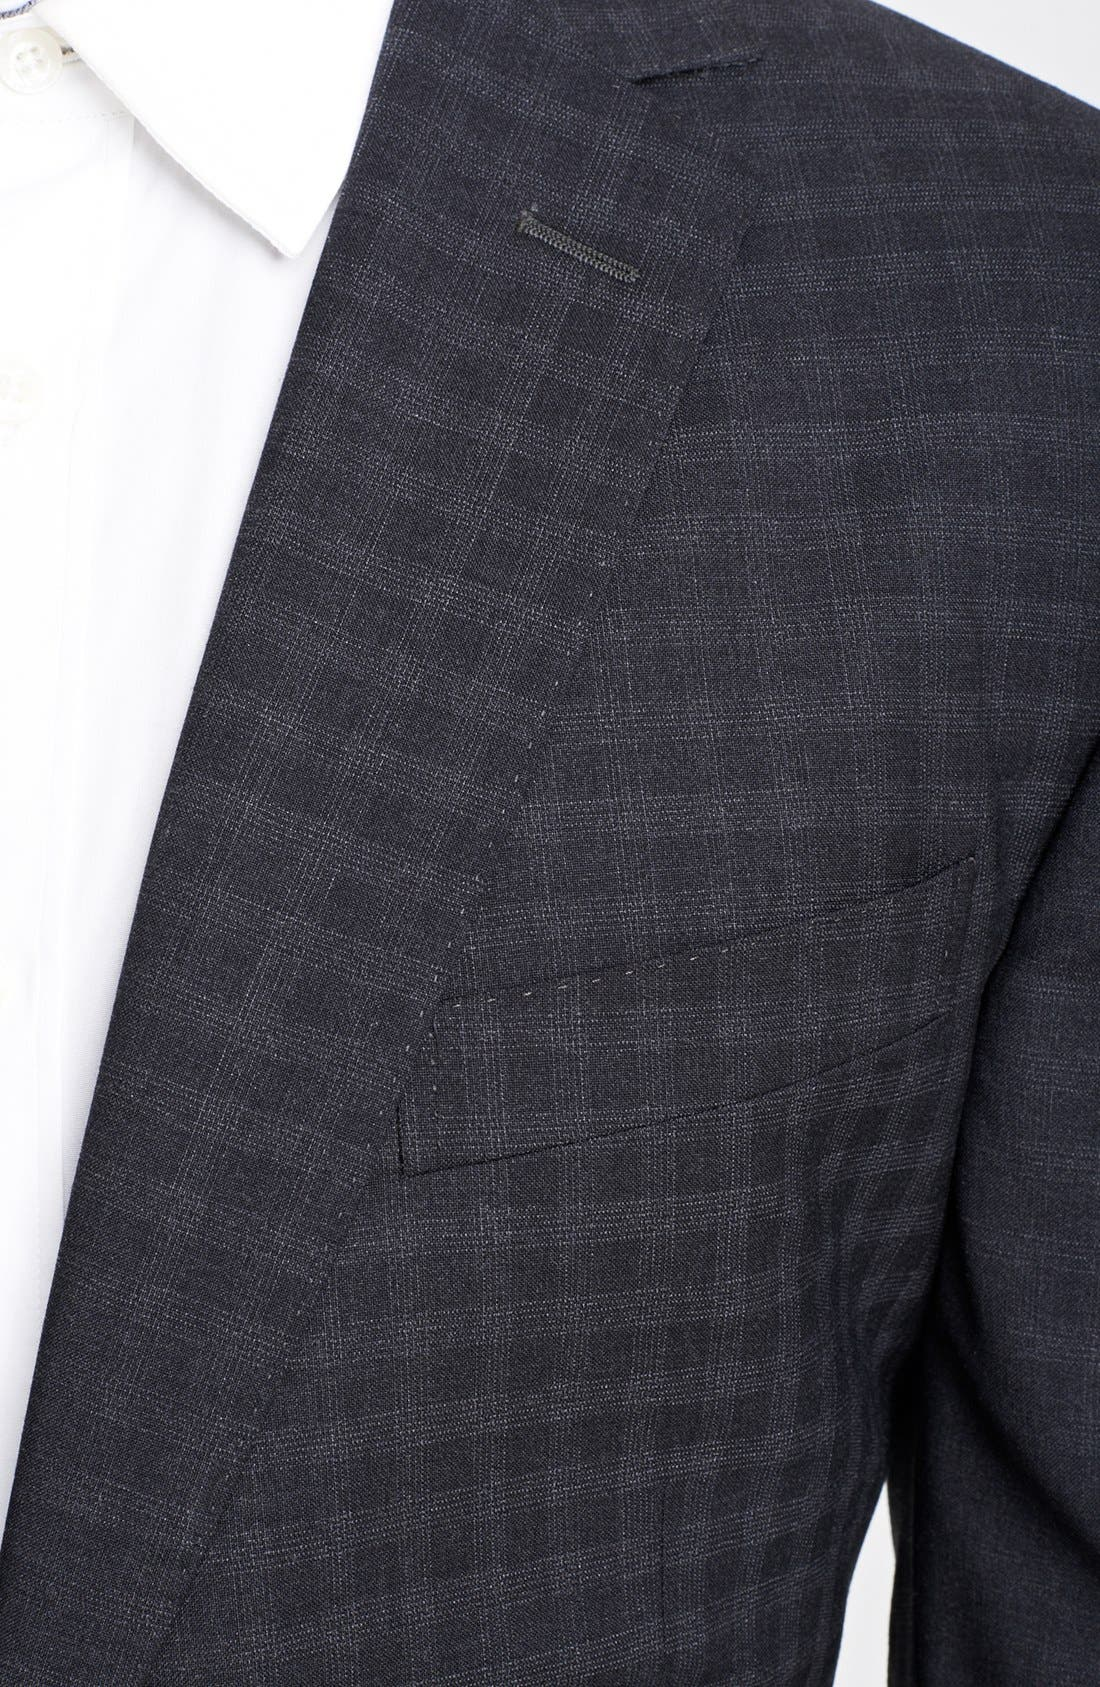 Alternate Image 2  - Z Zegna 'City' Dark Grey Check Wool Suit